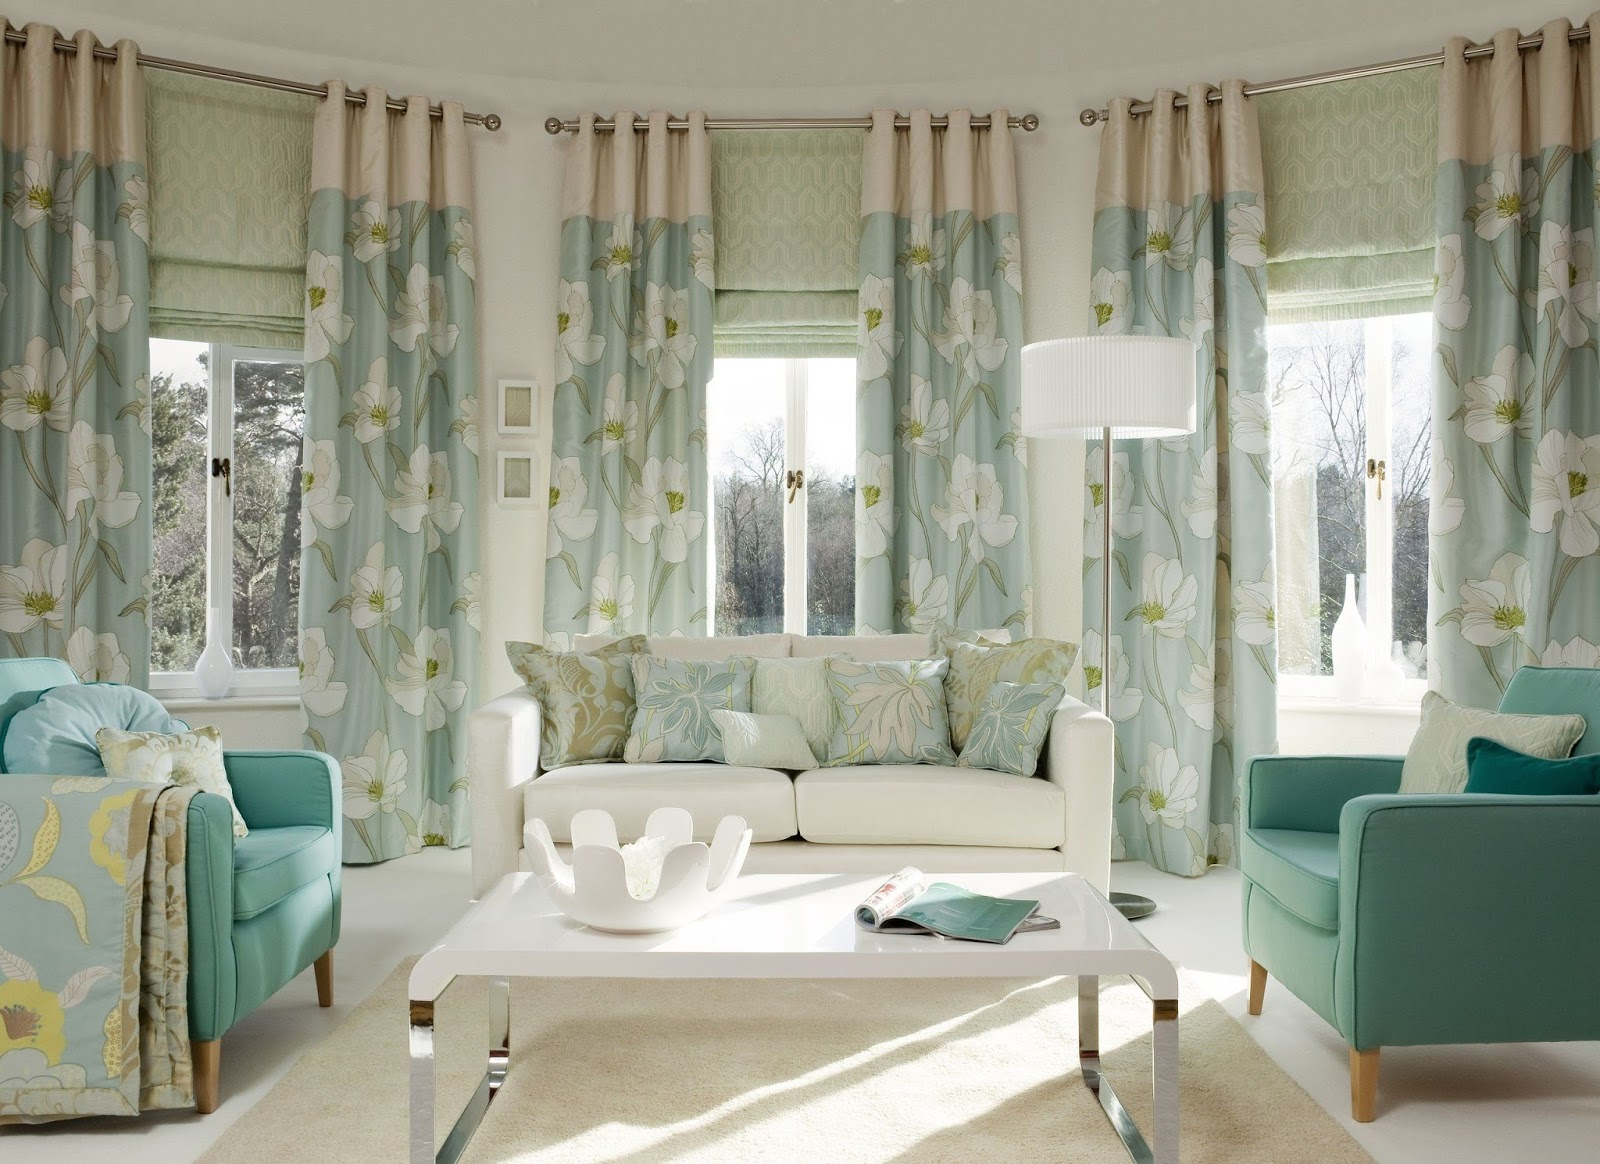 Living Room Drapes And Curtain Ideas For 2017 With Nice Printed Design Modern